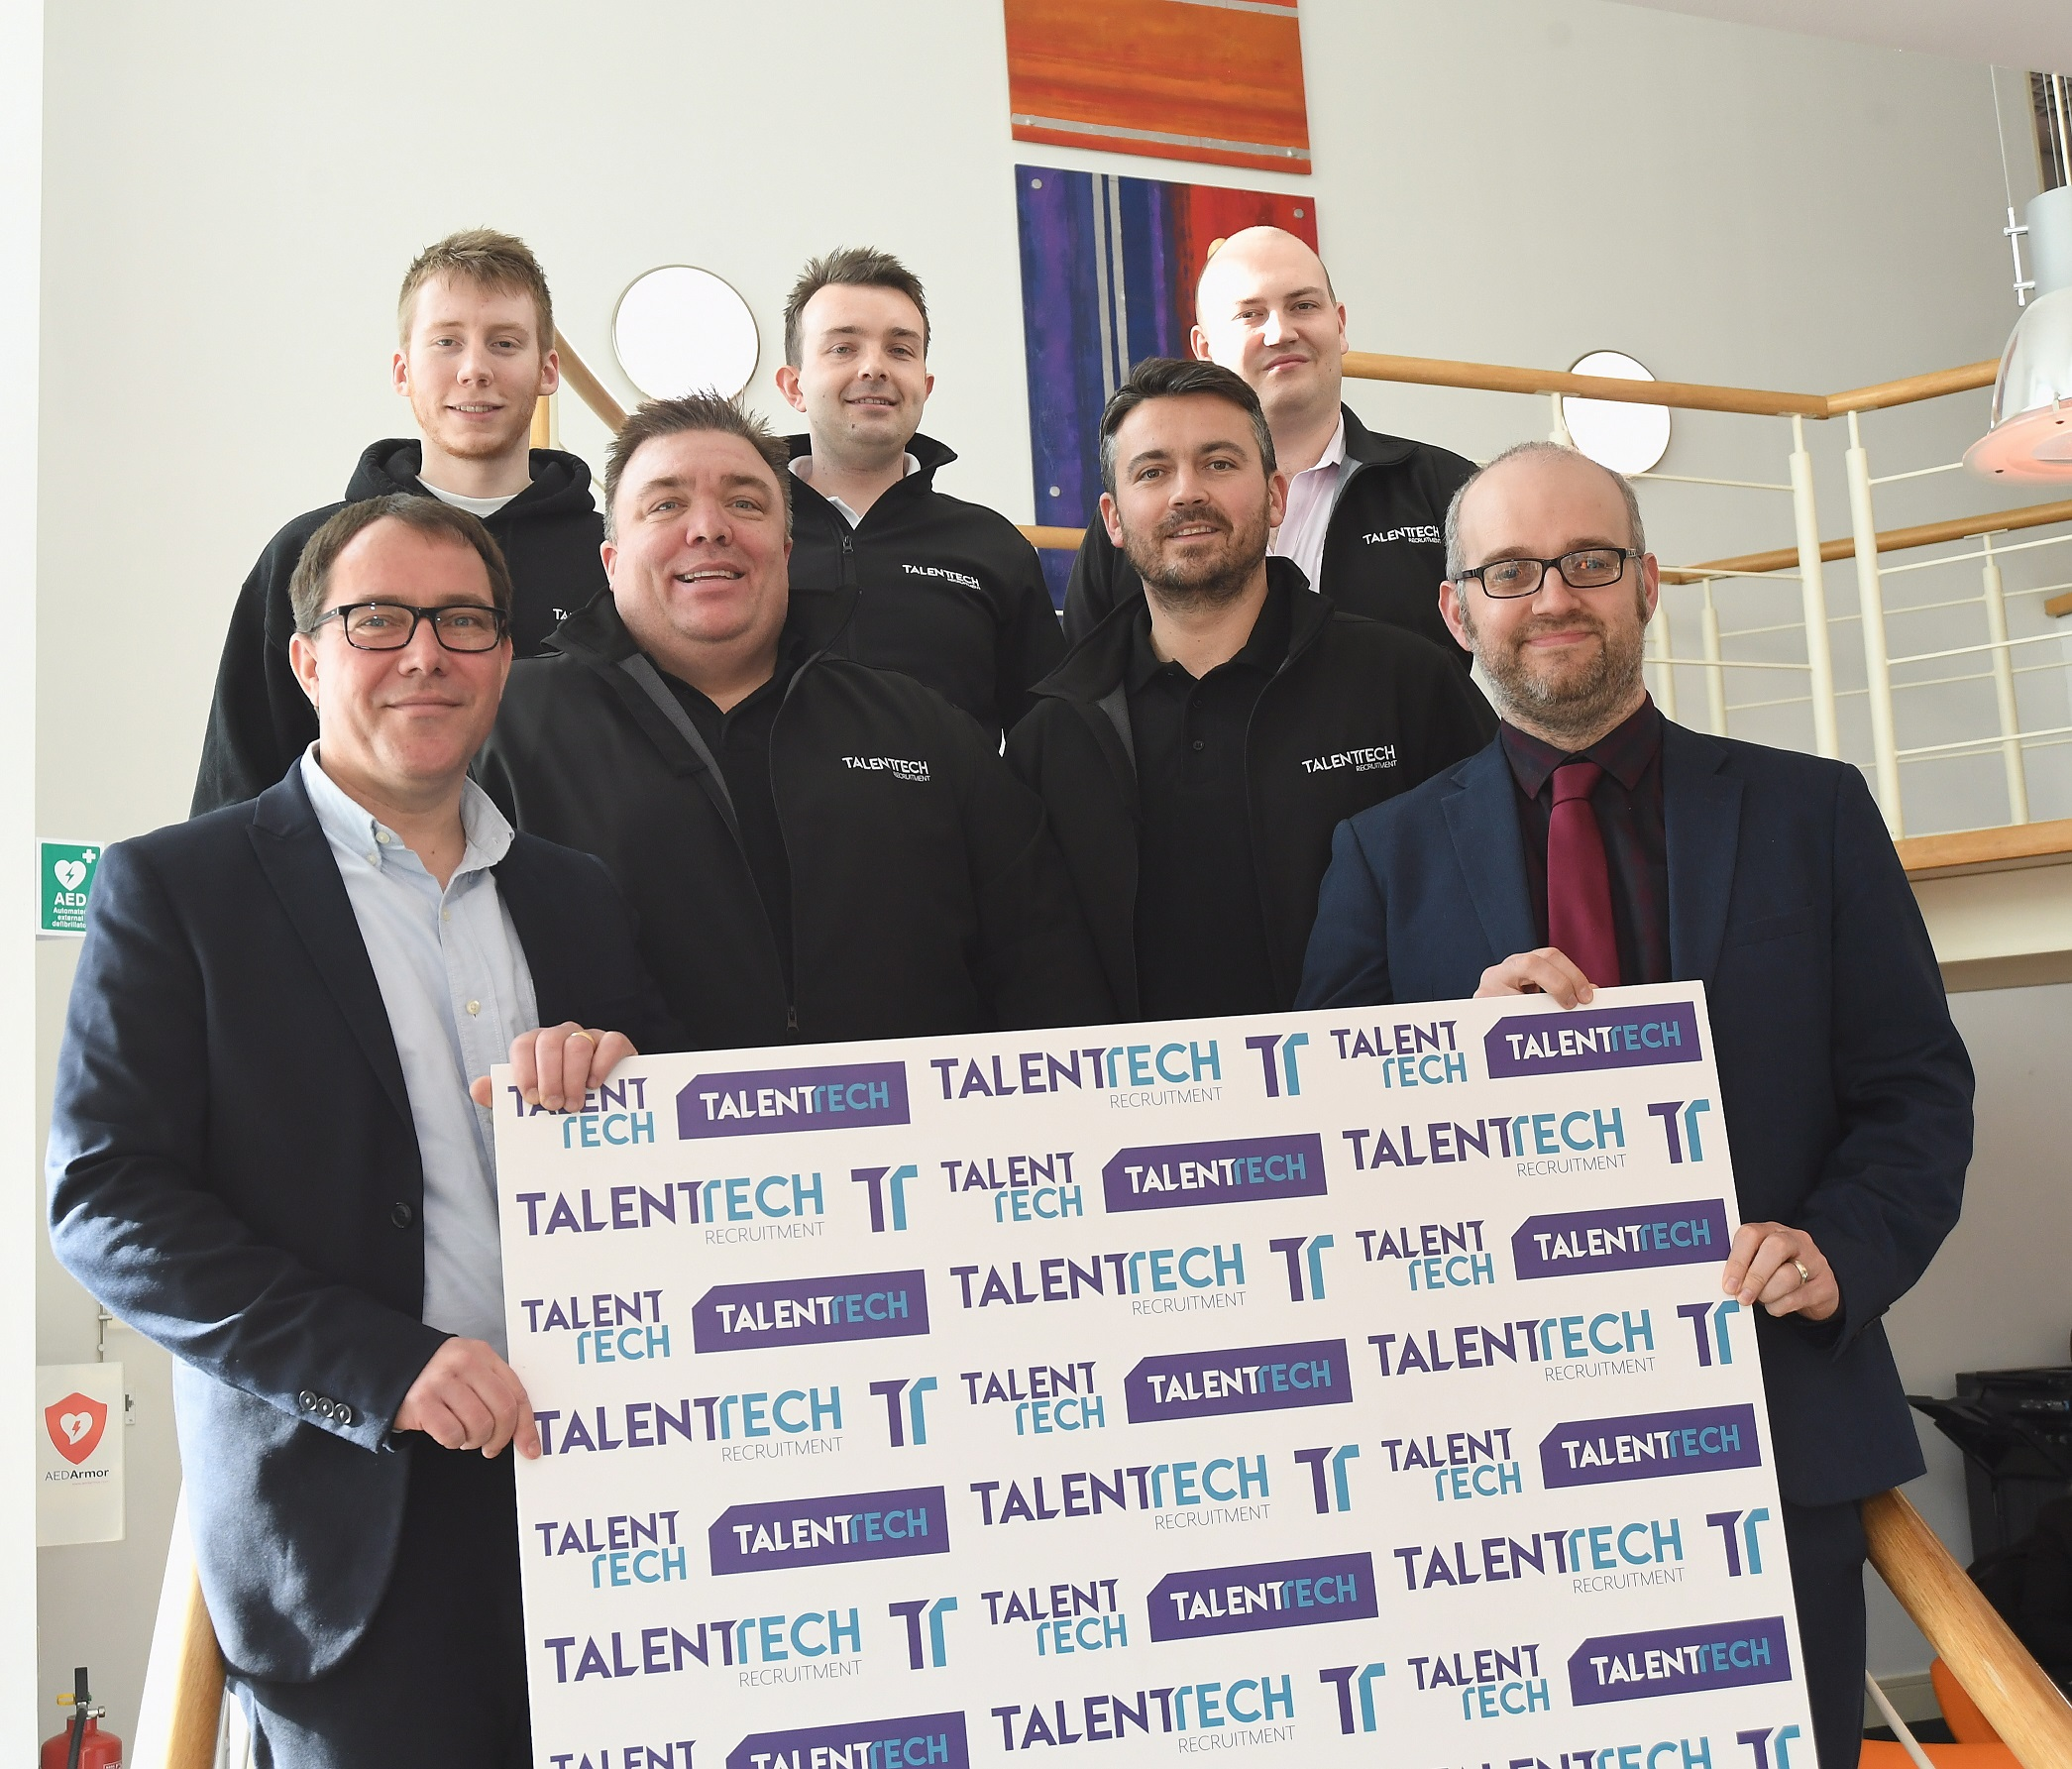 Recruitment company planning to launch software product